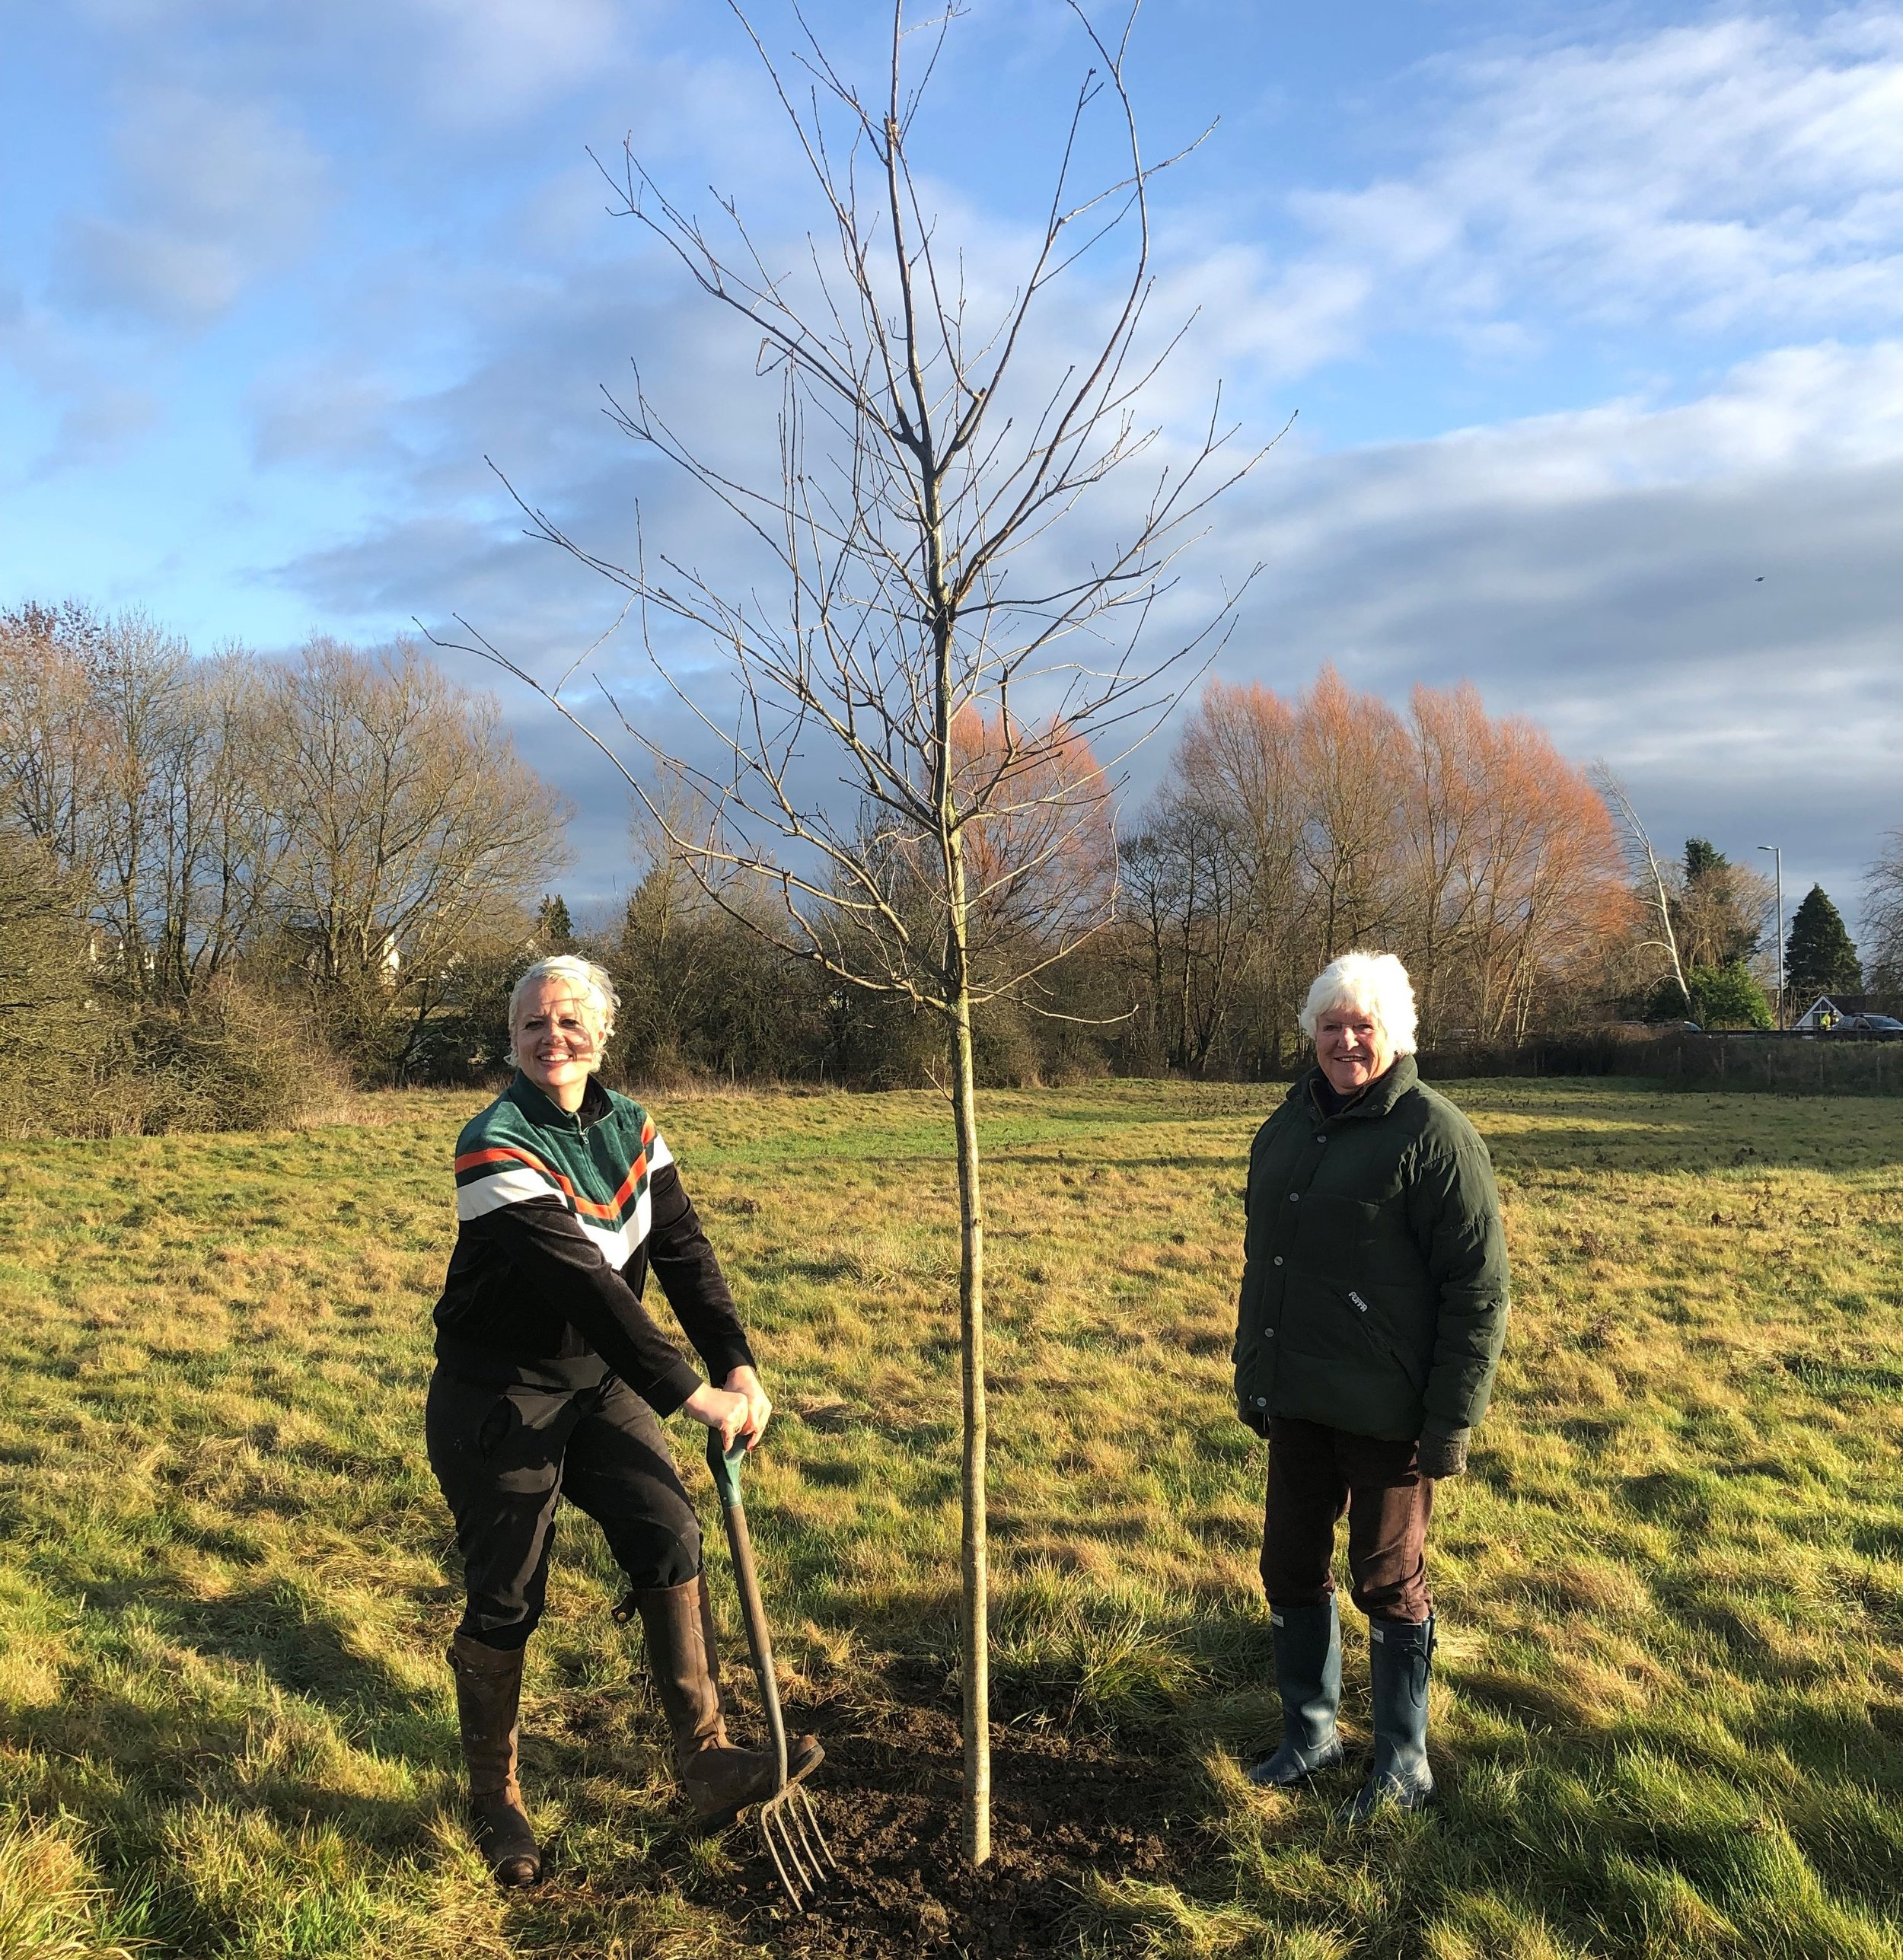 Nell Gifford planting an oak tree at Stratton Meadows with owner Sarah Holland